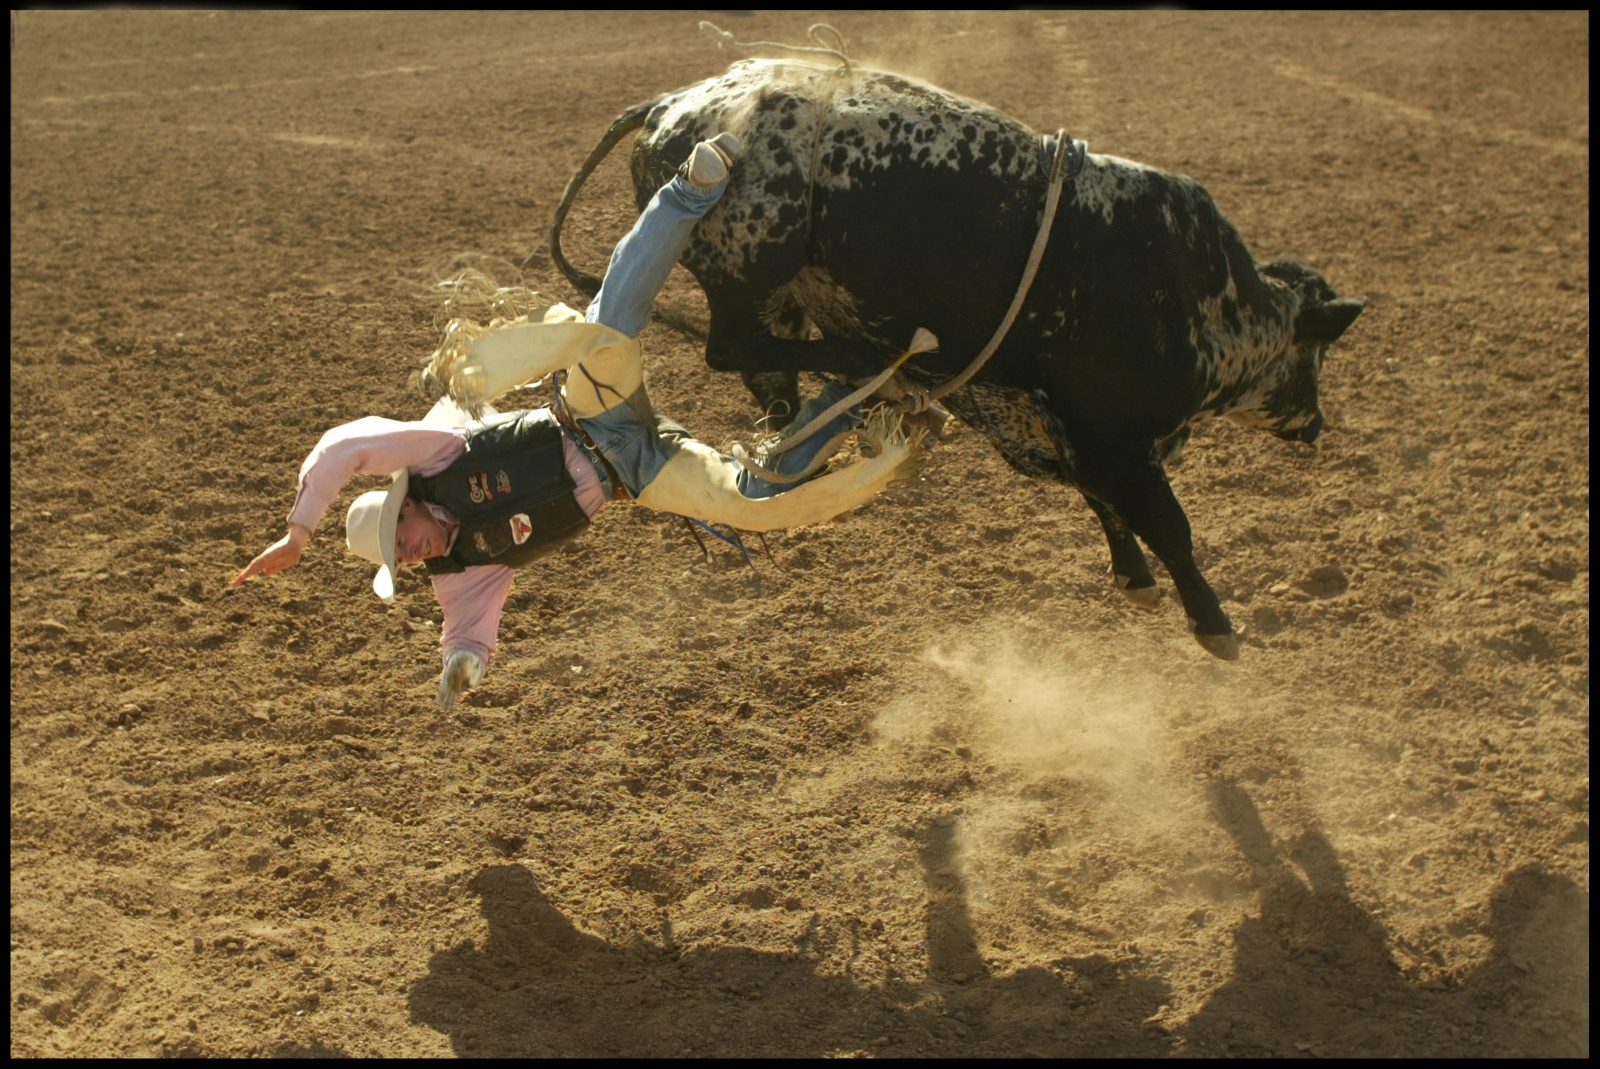 Rodeo, Arizona 2012, National Geographic Traveler Magazine.